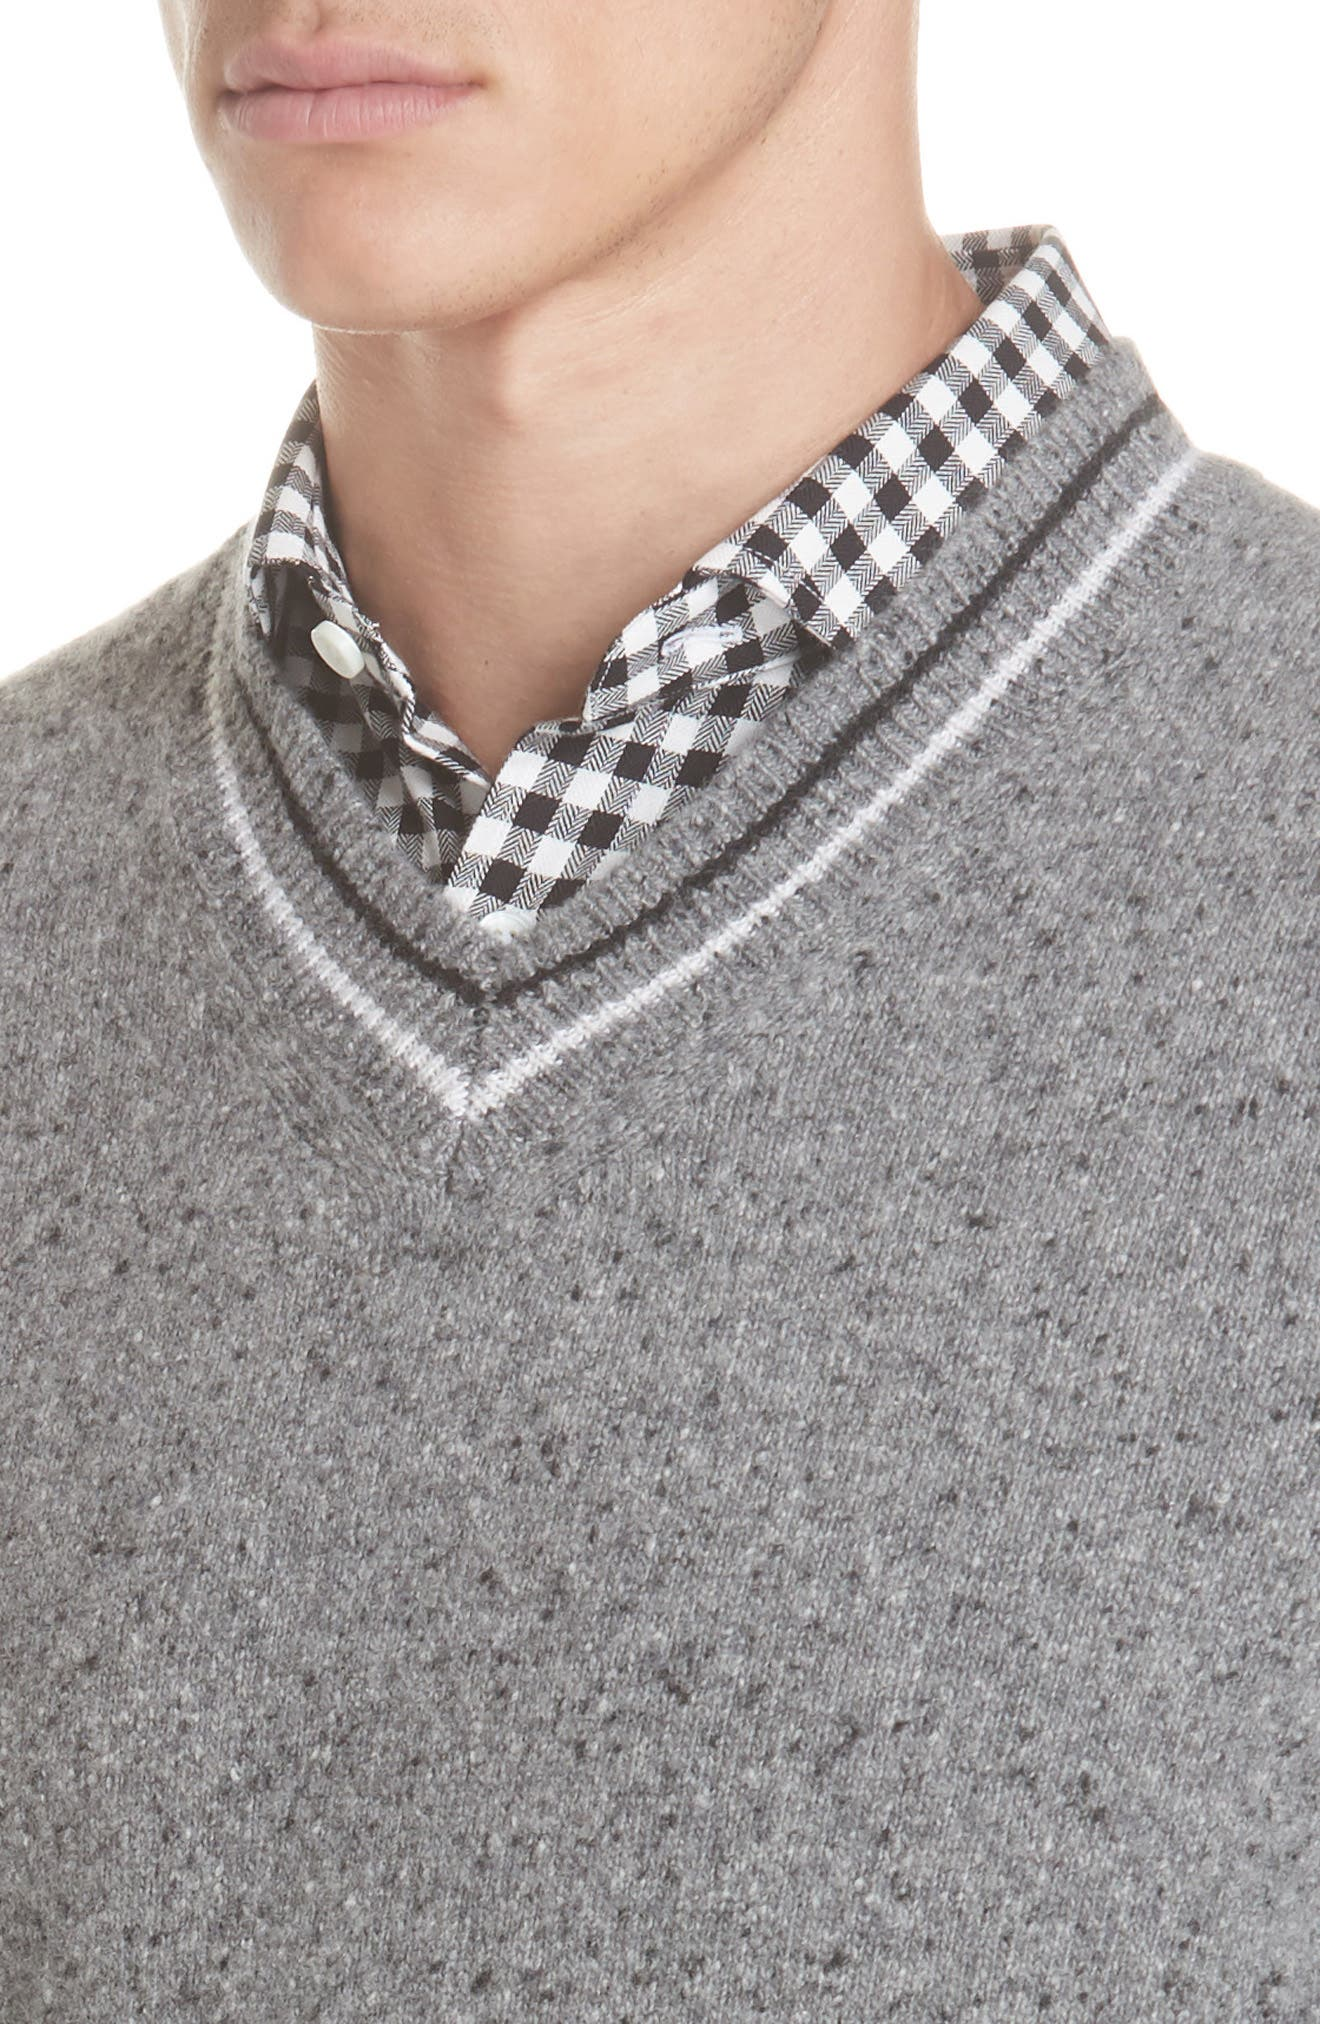 Trim Fit V-Neck Wool & Cashmere Sweater,                             Alternate thumbnail 4, color,                             GREY